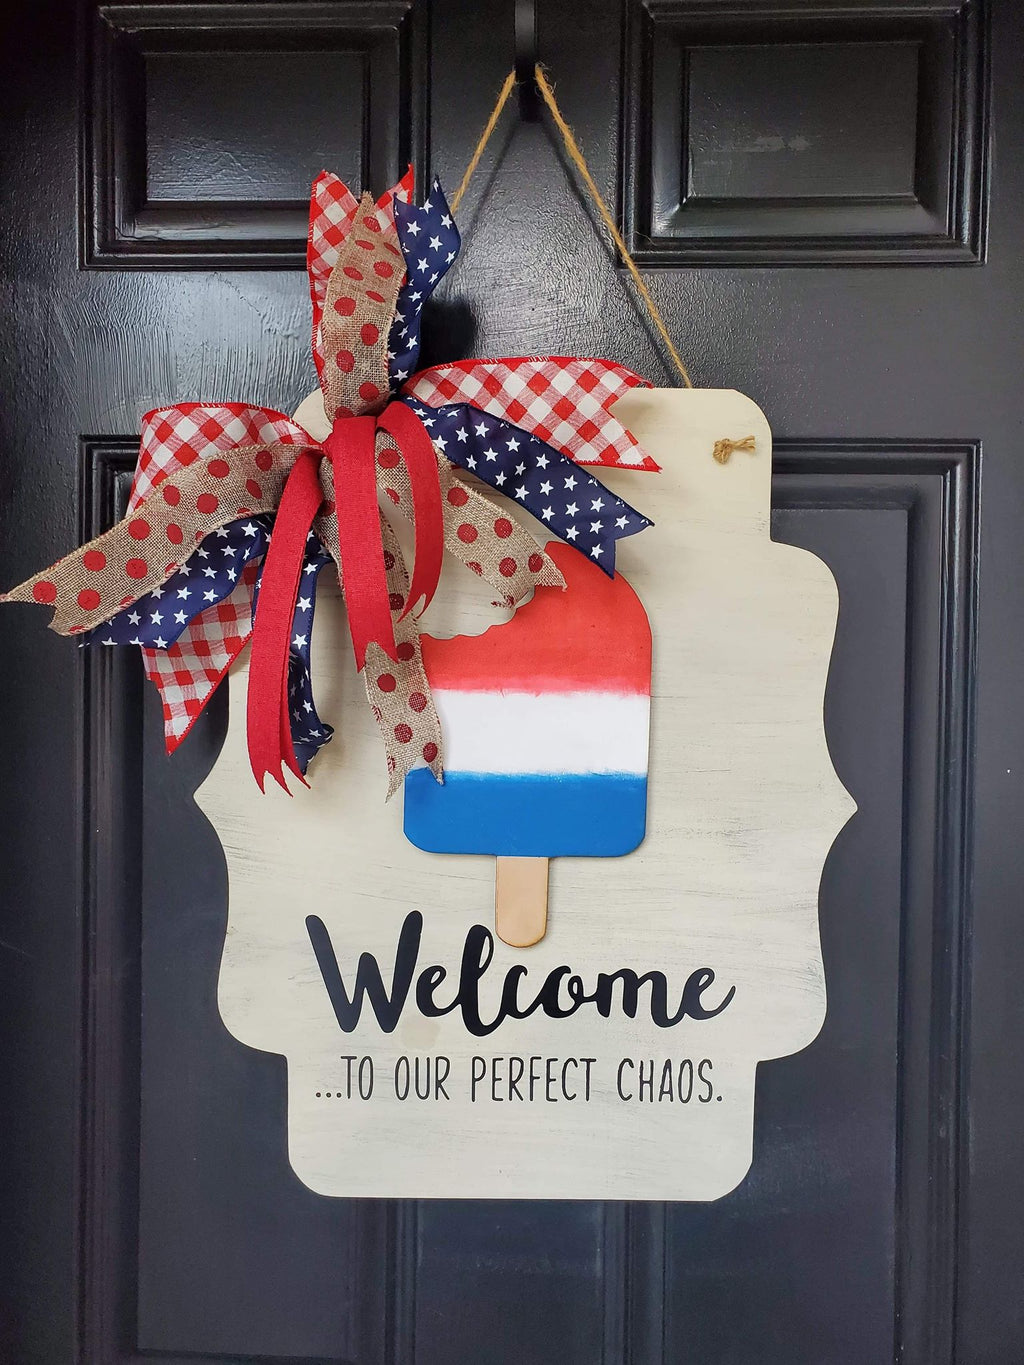 3D Seasonal interchangeable Scalloped Door Hanger-Welcome to our perfect chaos (LARGE 3D PCS)